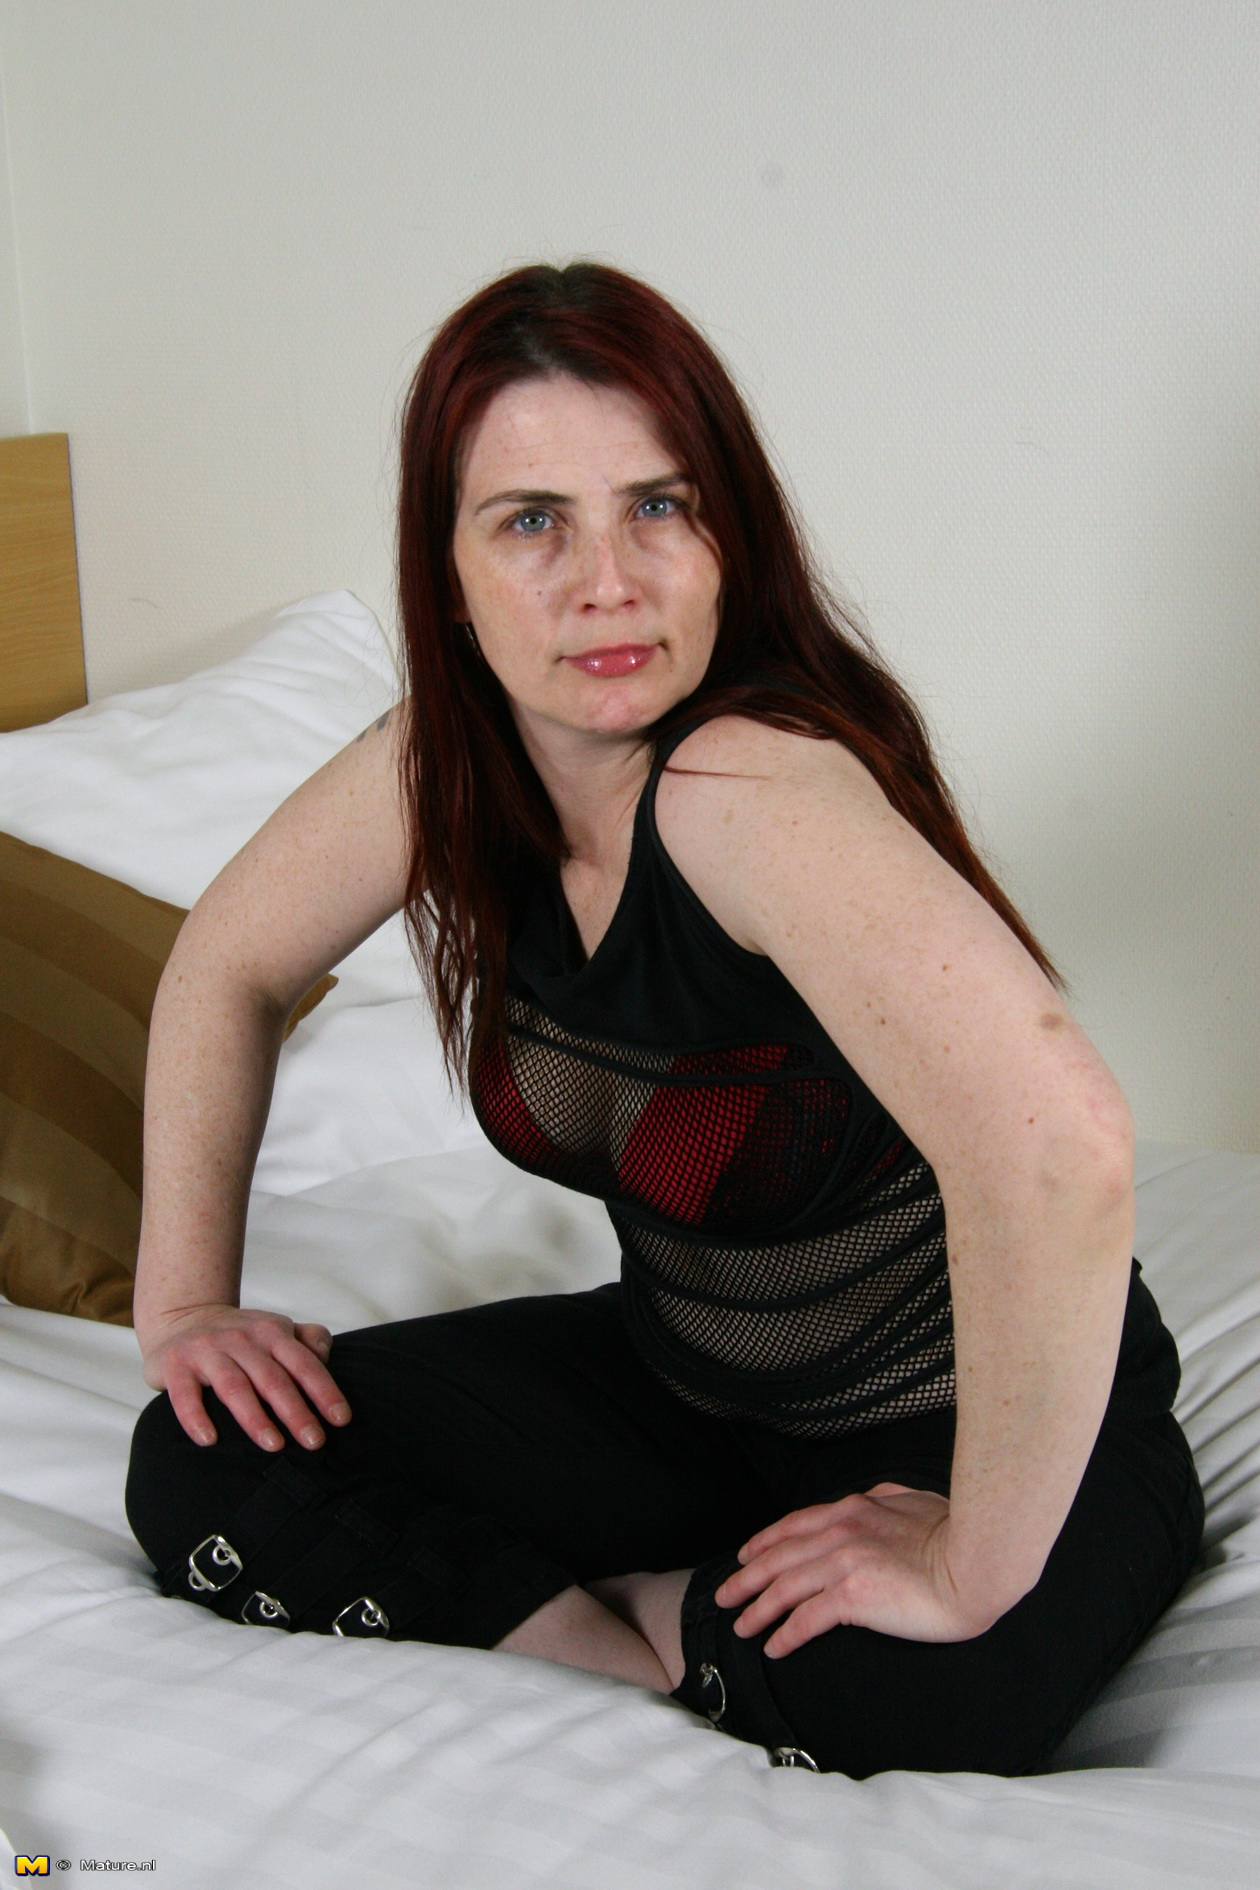 Dutch housewife playing in bed - 16 pics - Porn Mature Pics